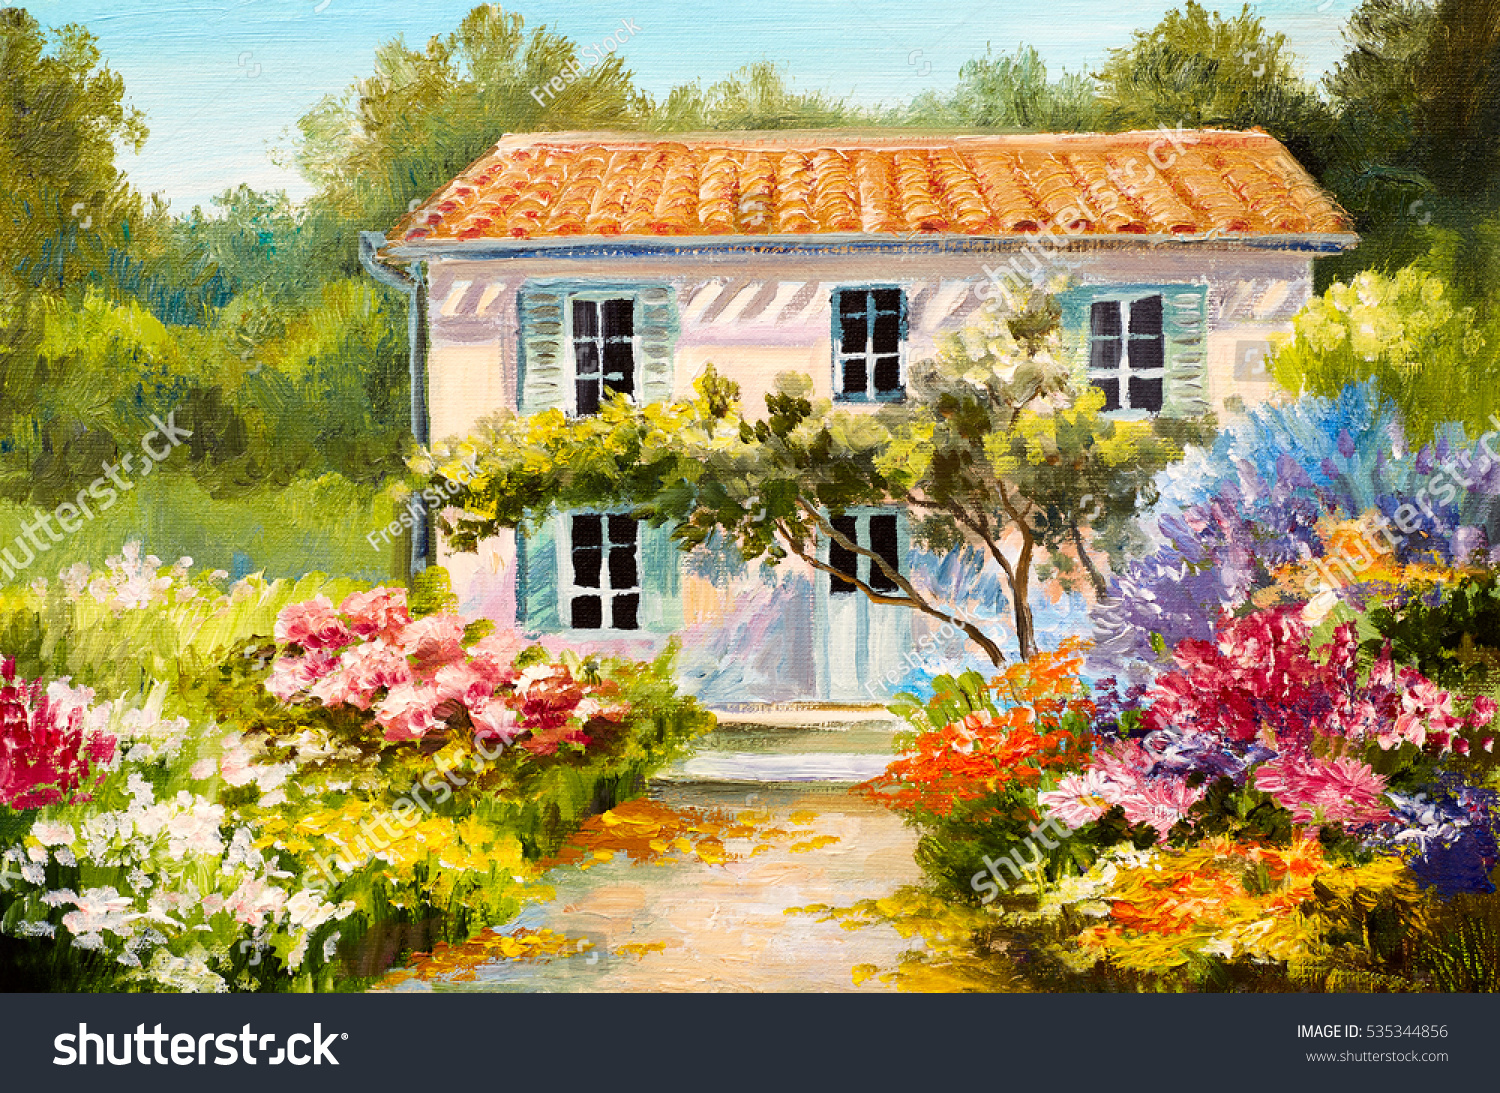 Oil painting on canvas of a beautiful house and flowers abstract drawing watercolor art